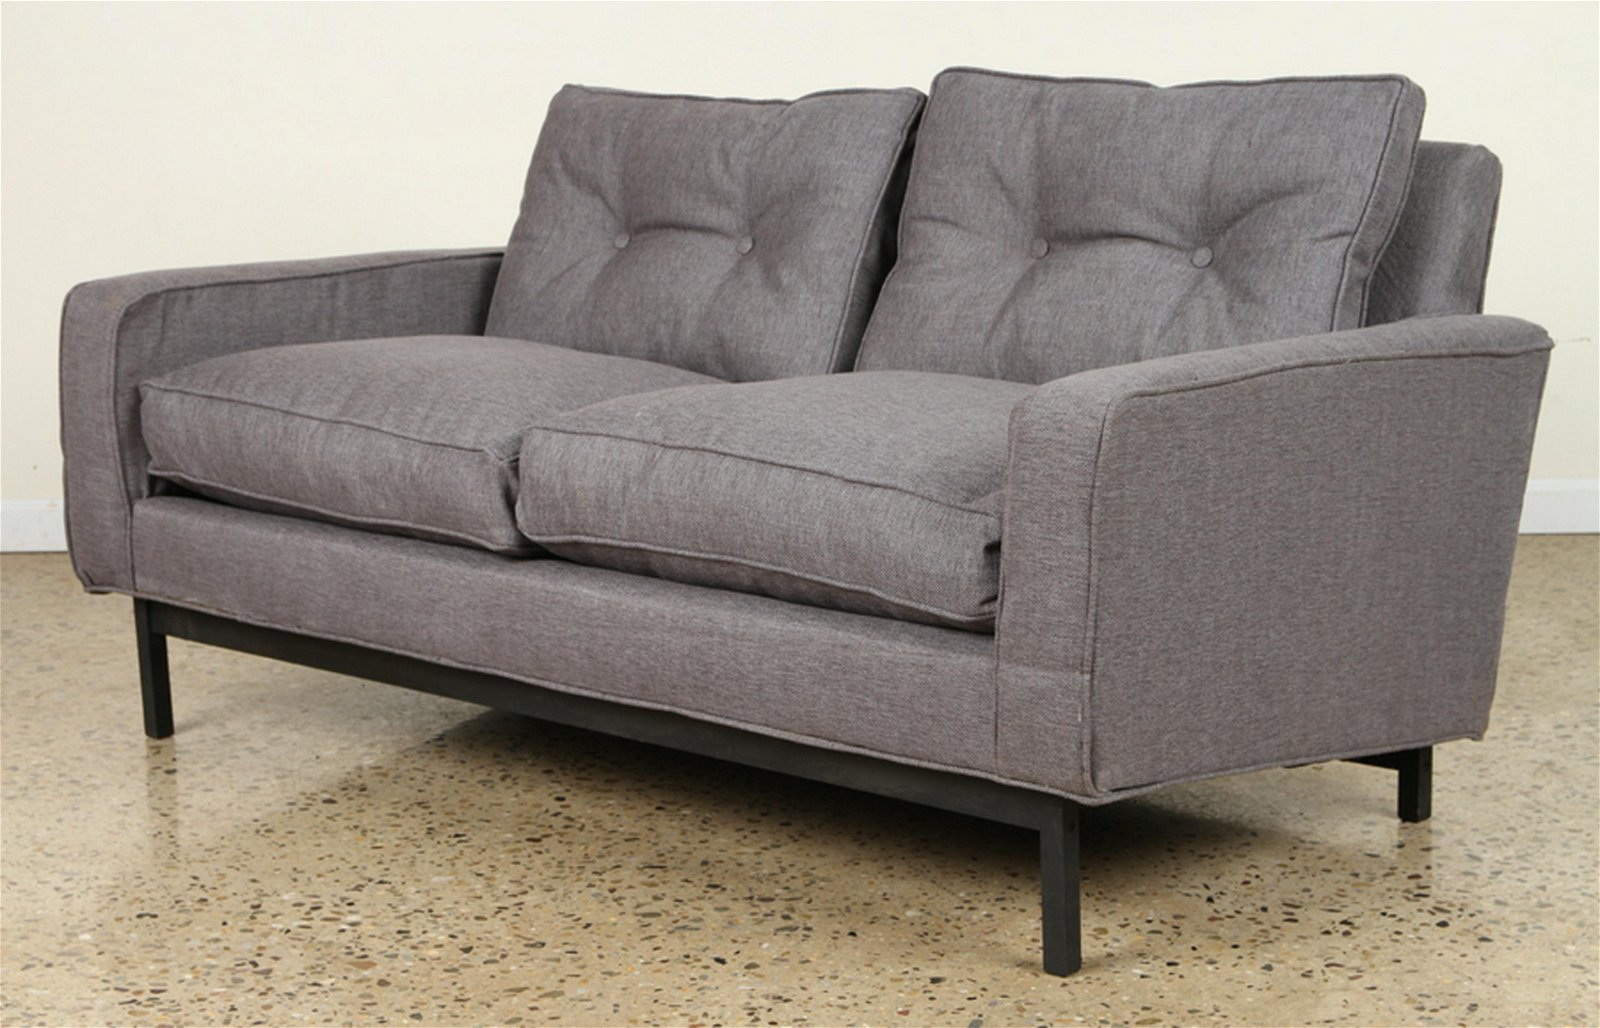 MID CENTURY MODERN SETTE ON IRON FRAME BY KNOLL